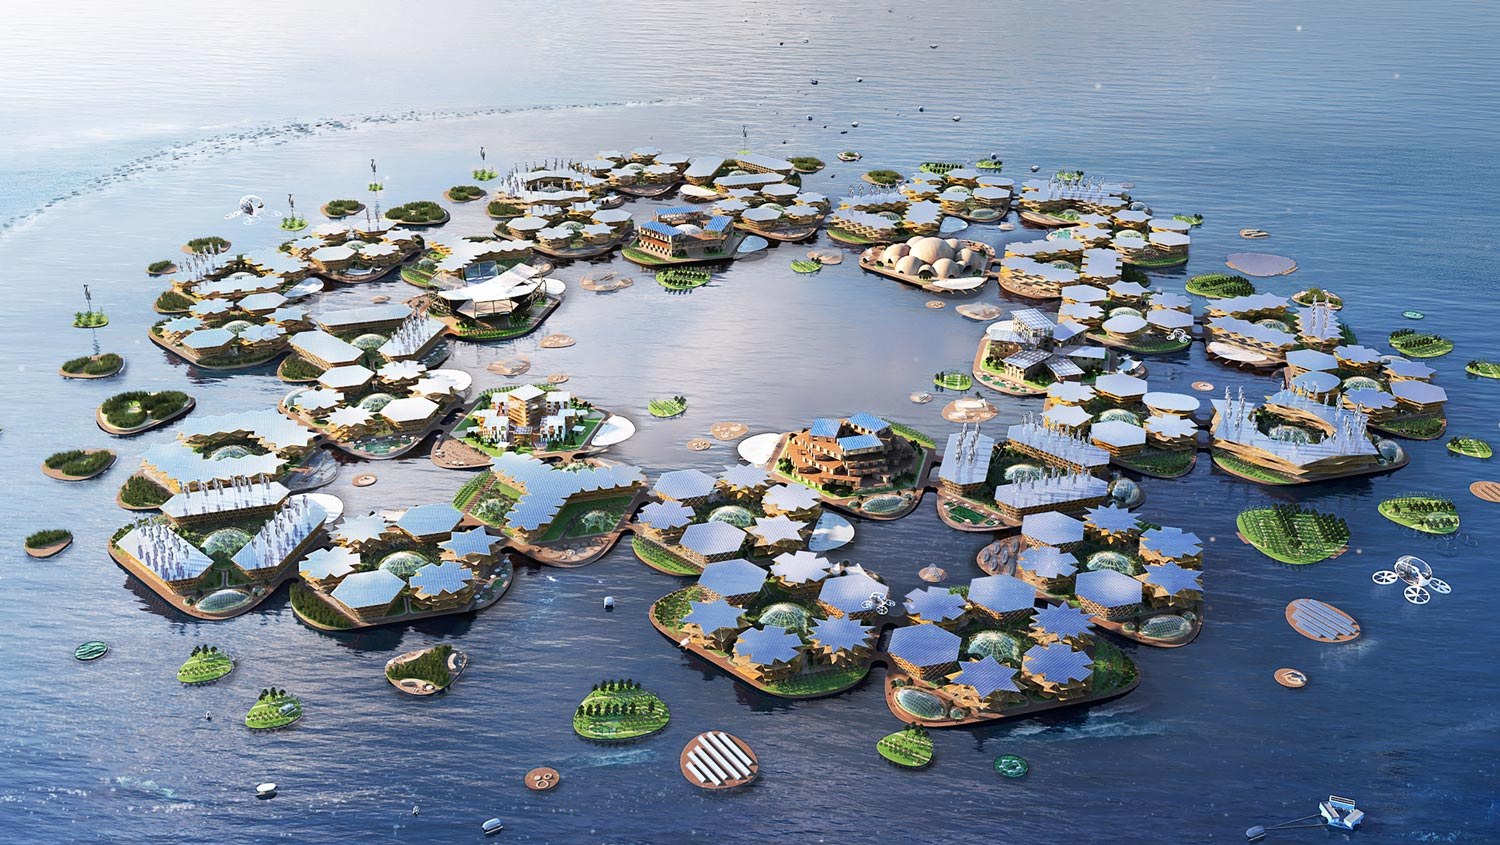 oceanix-city-floating-big-un-habitat-mit_hero.jpg